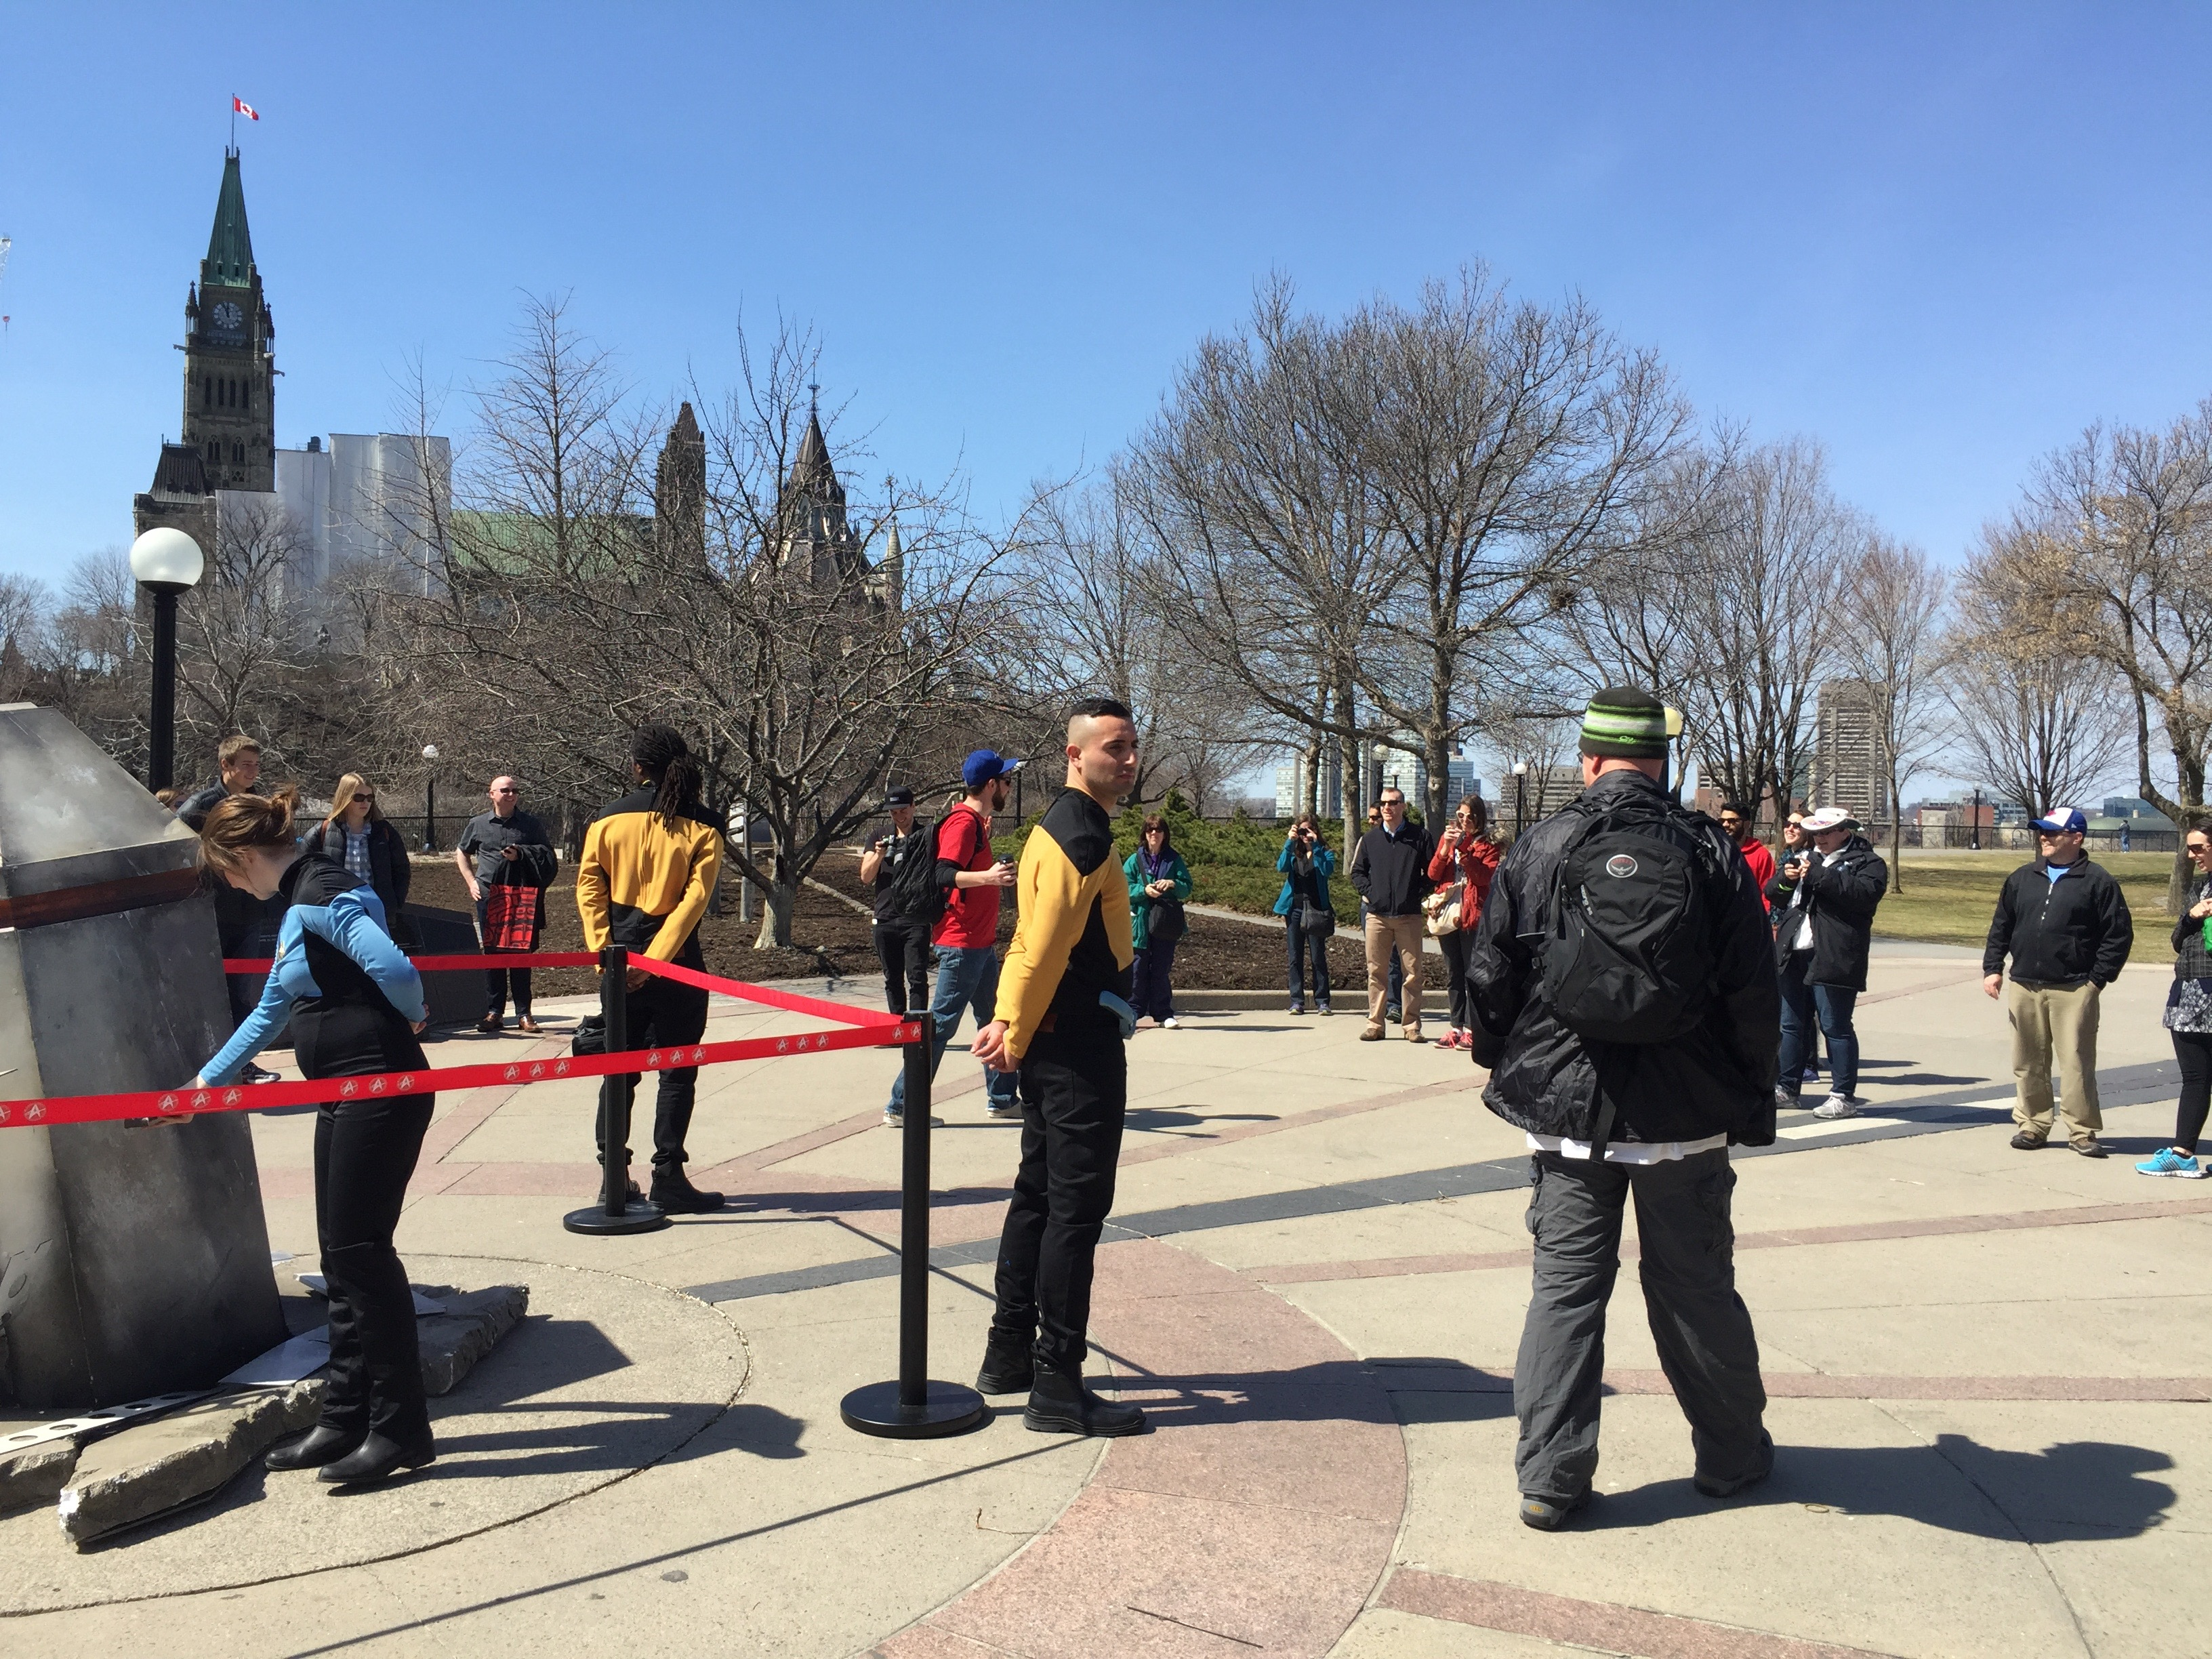 Star Trek experiential marketing installation draws a crowd in Ottawa, Canada